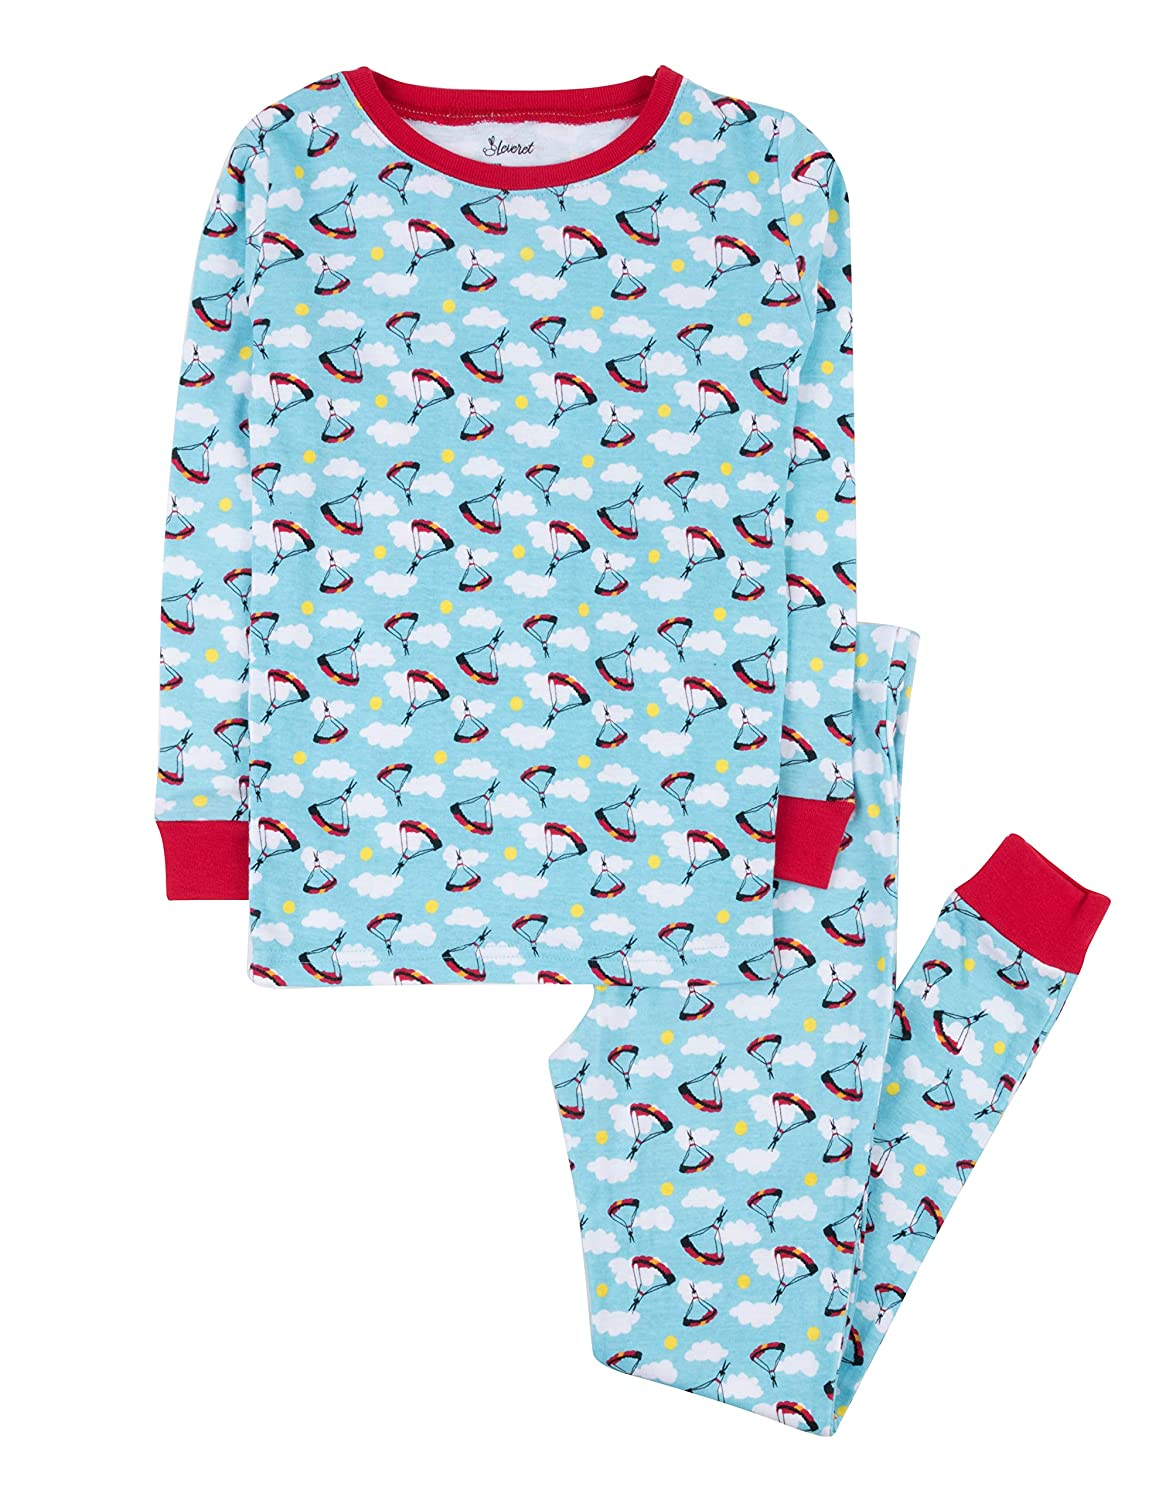 Leveret Kids /& Toddler Pajamas Boys Girls Unisex 2 Piece Pjs Set 100/% Cotton Sleepwear 12 Months-14 Years